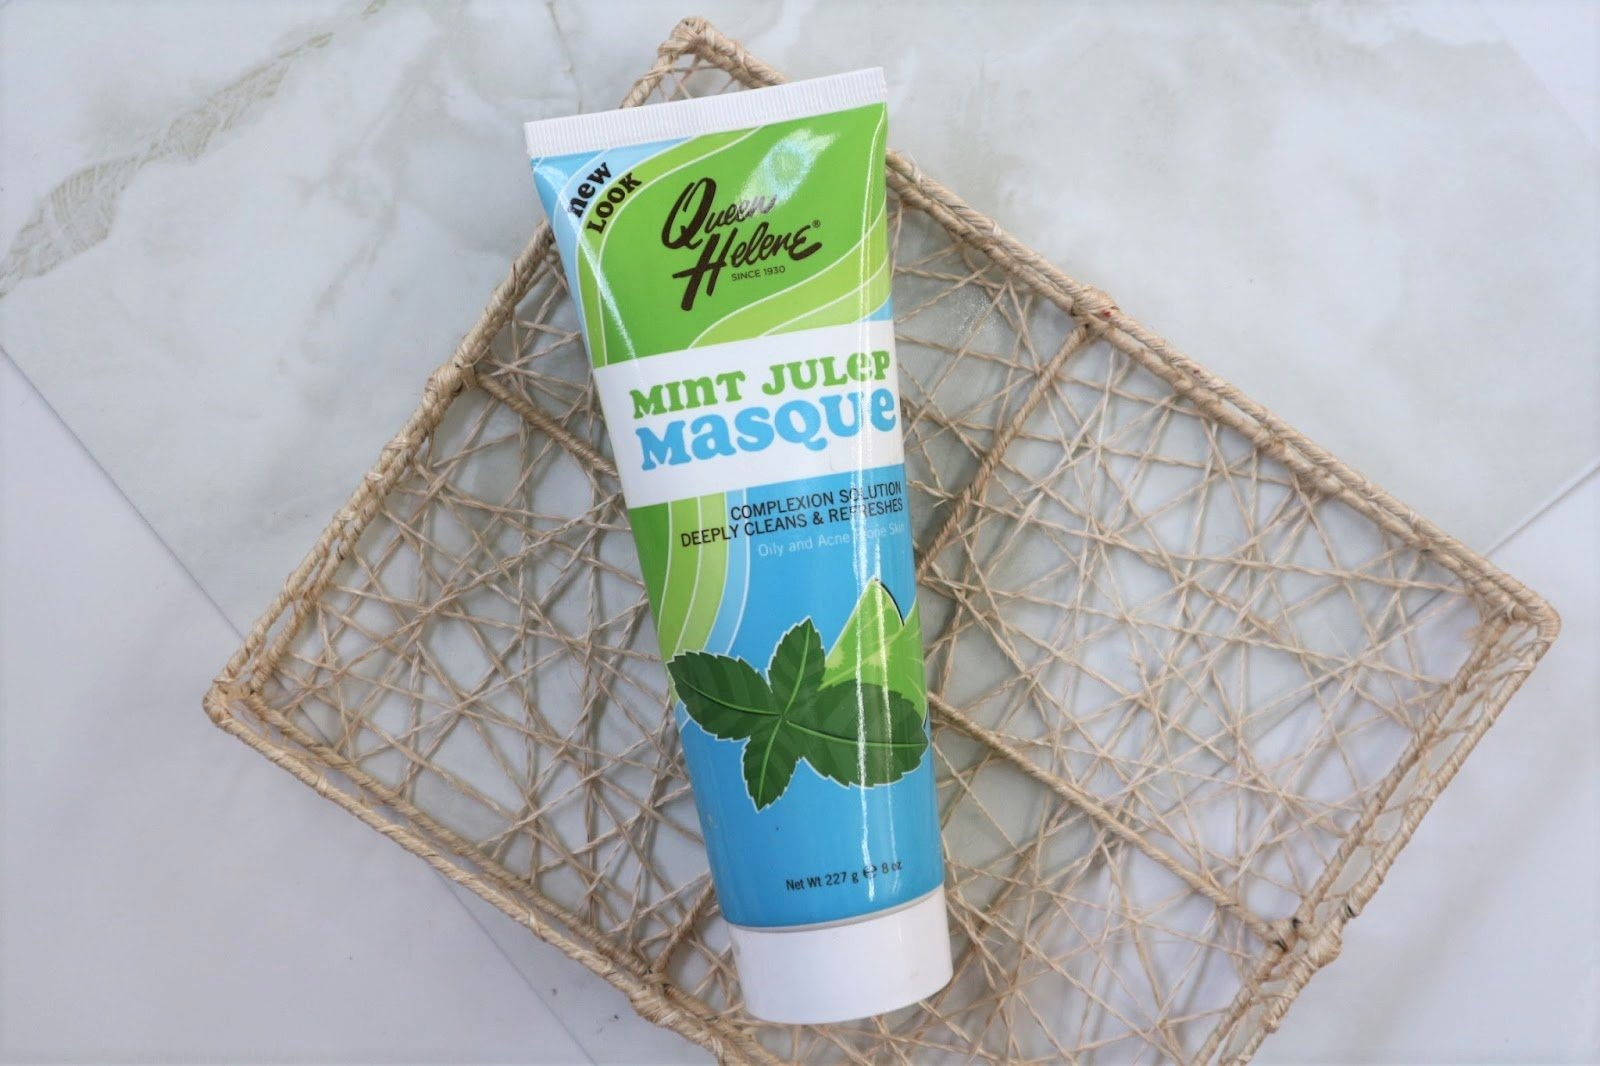 Mint-Julep-Masque-01